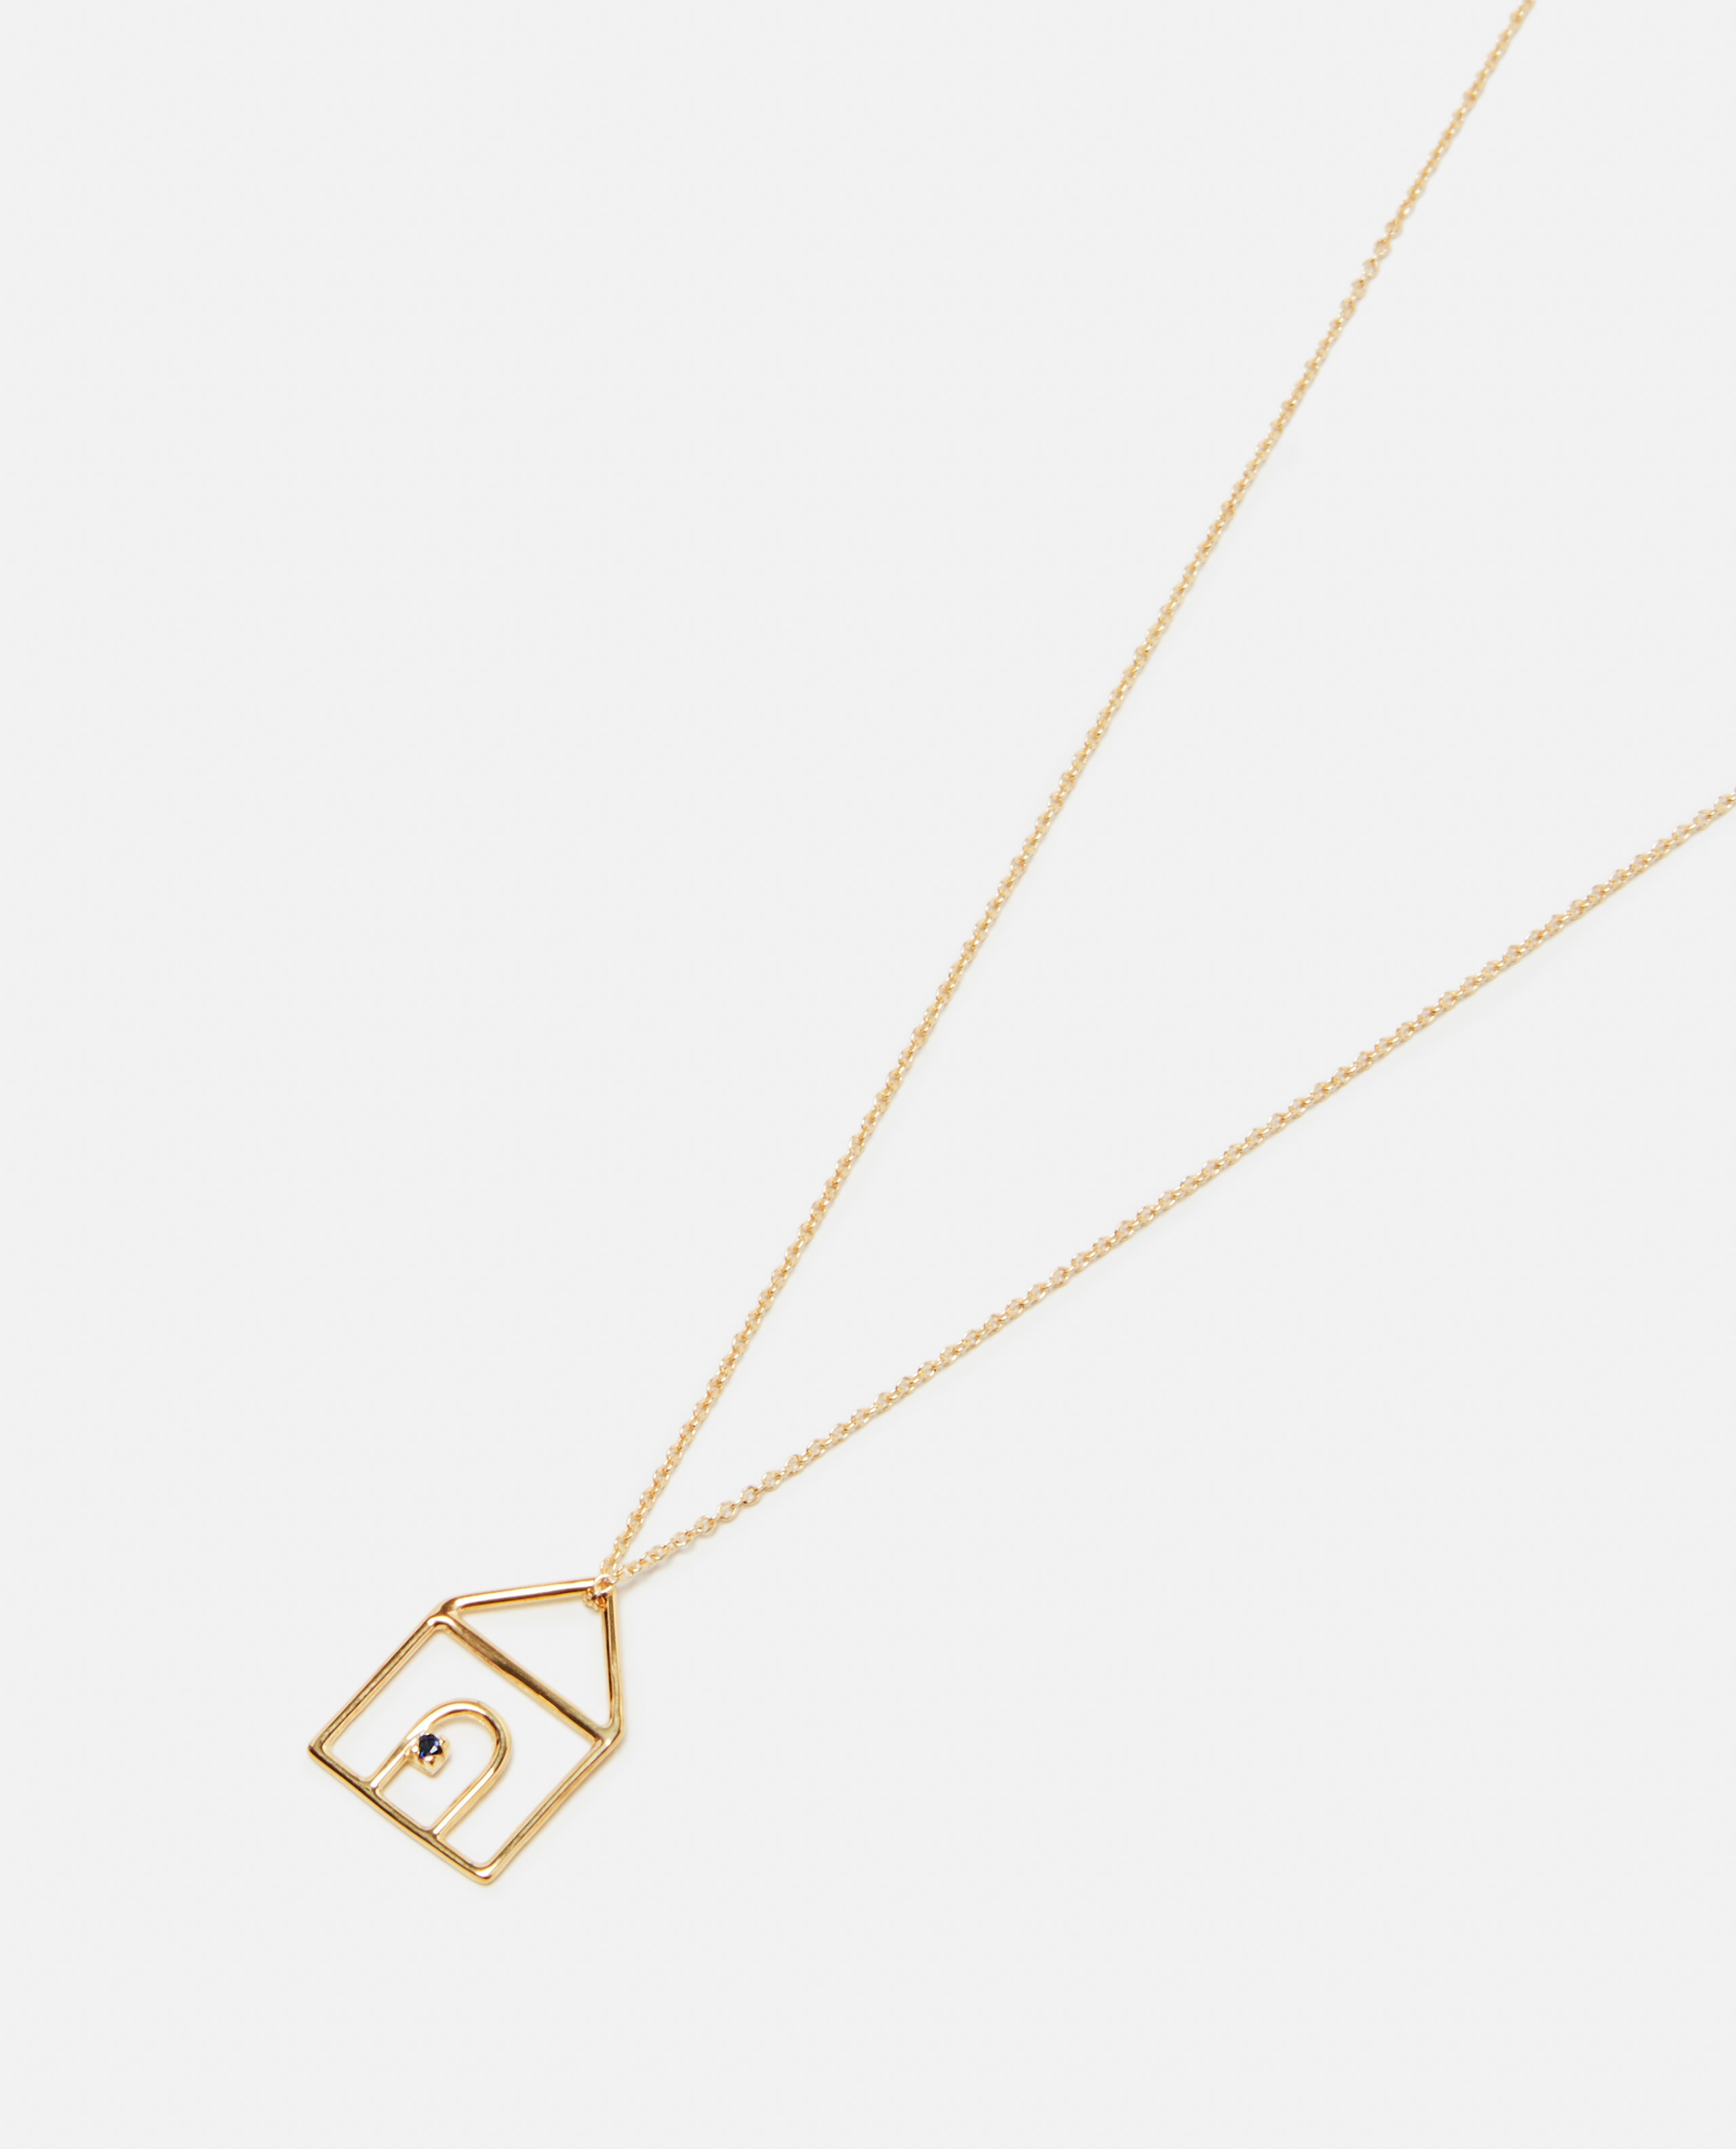 Casita necklace with pendant in 9kt yellow gold and sapphires Women Aliita 000291880042985 2